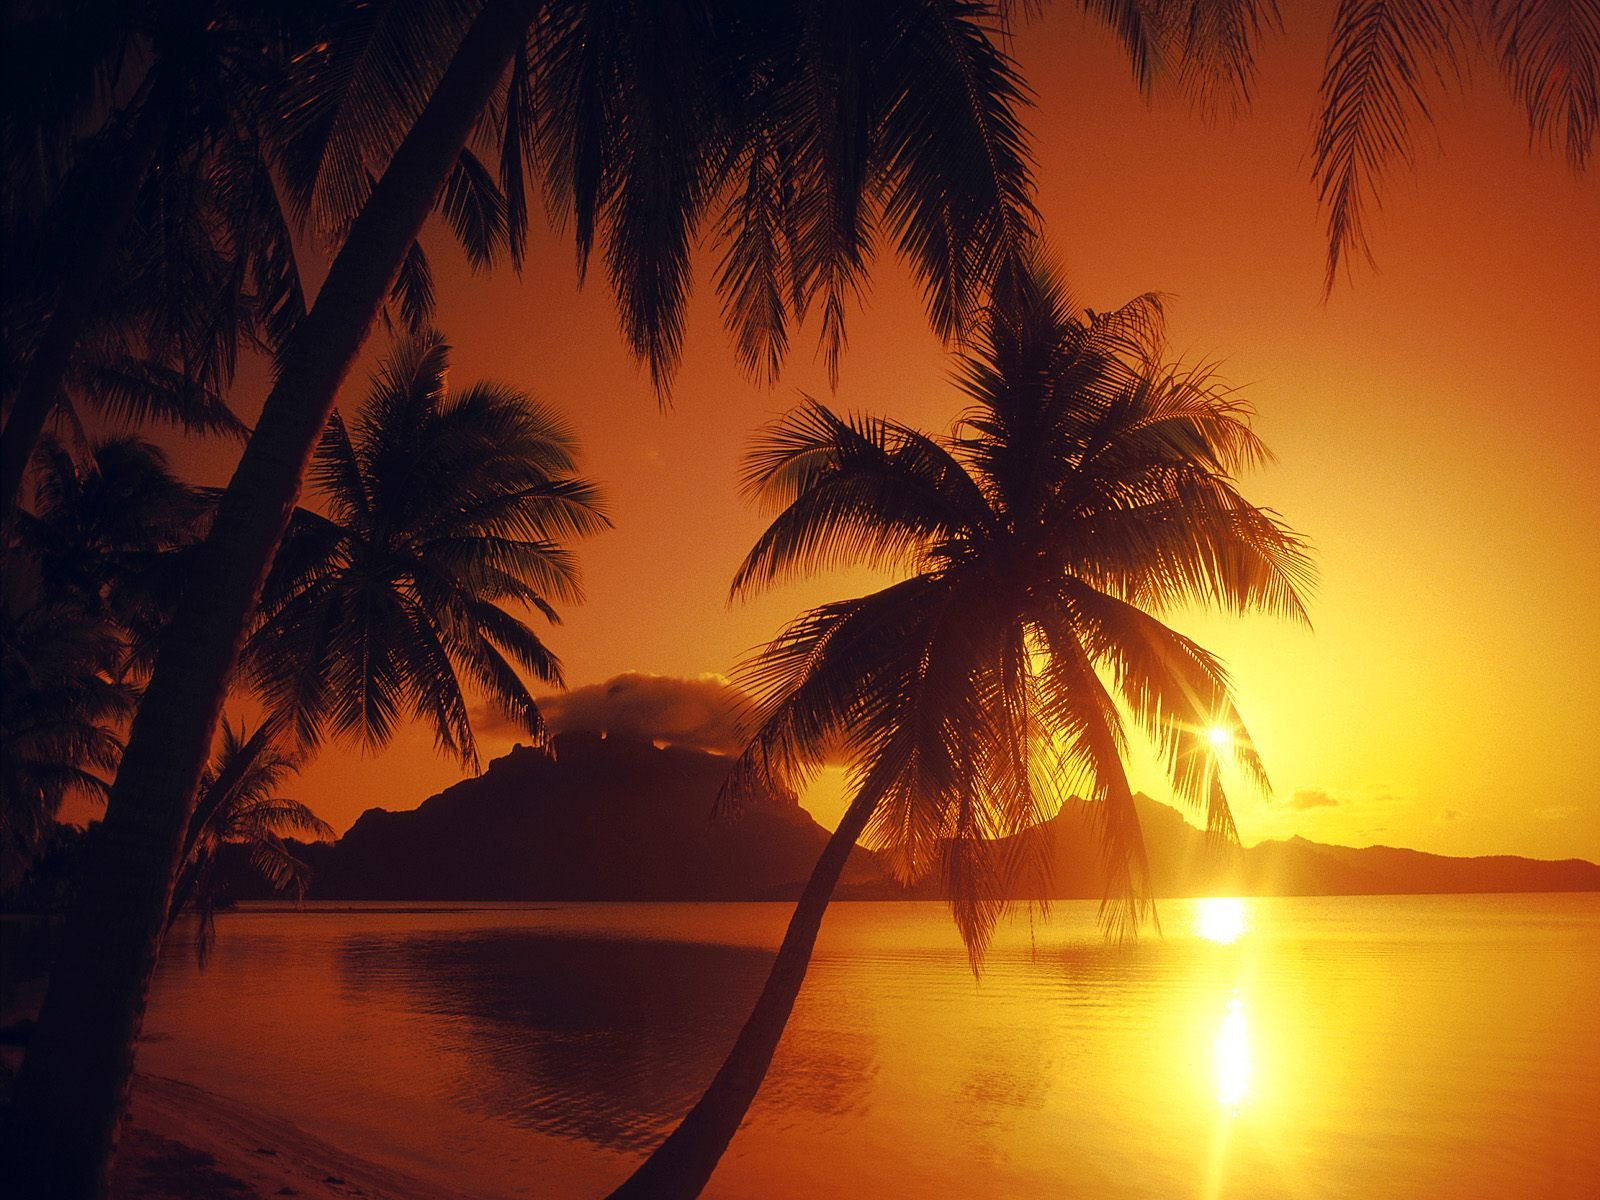 water sunset shore palm trees beaches